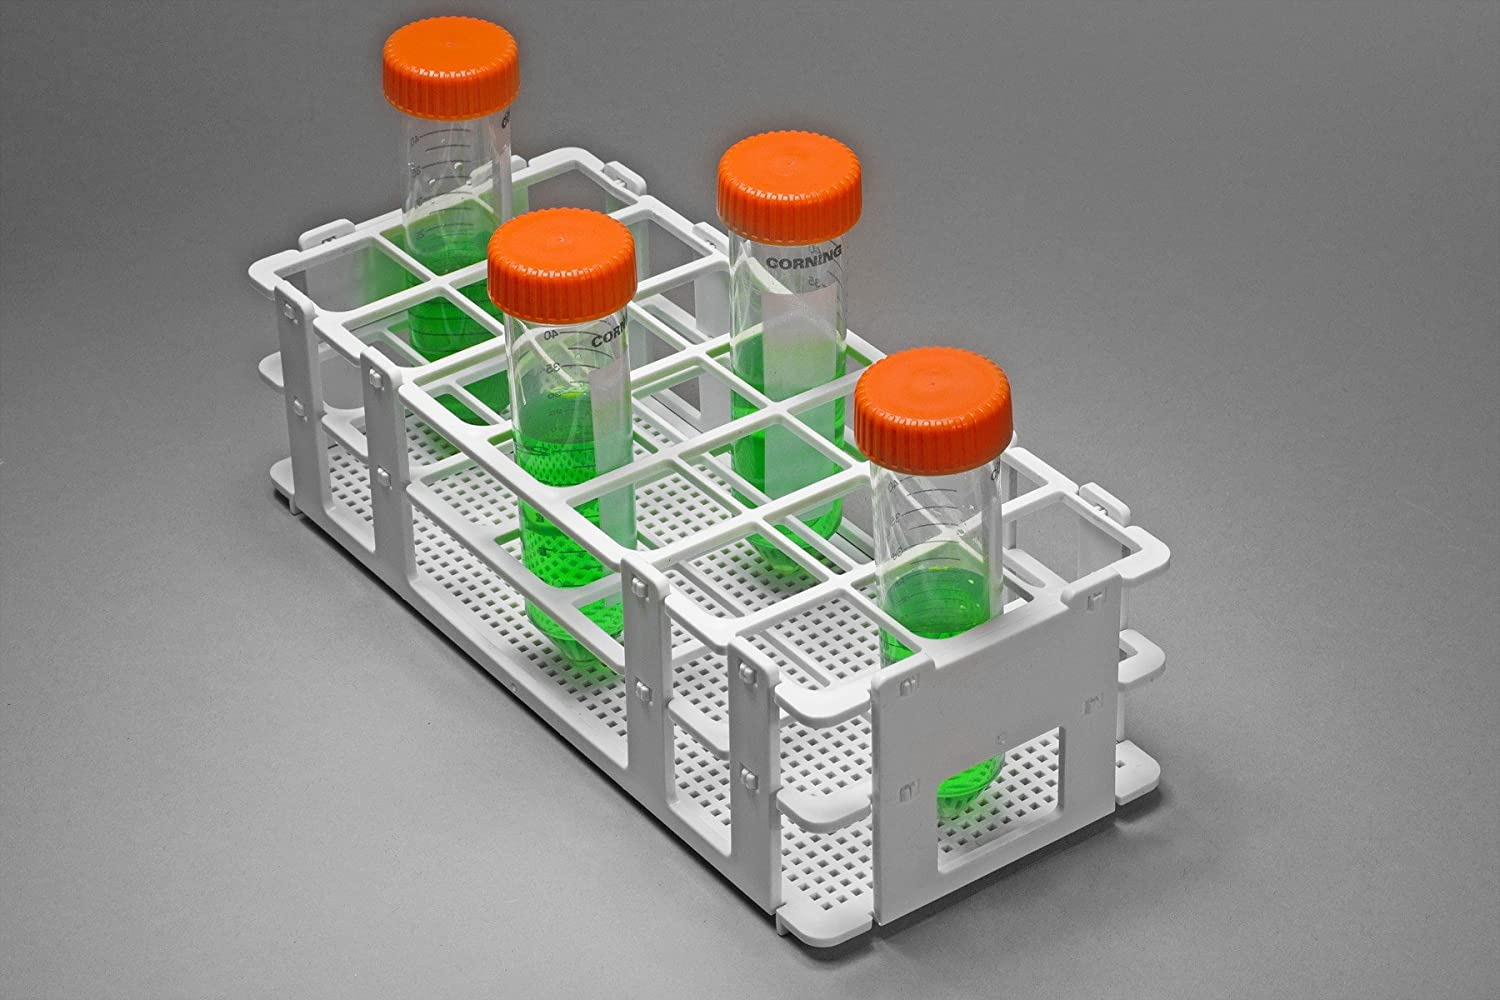 21 Places White Bel-Art F18745-0004 No-Wire Test Tube Rack; 25-30mm Polypropylene 9.7 x 4.1 x 2.5 in